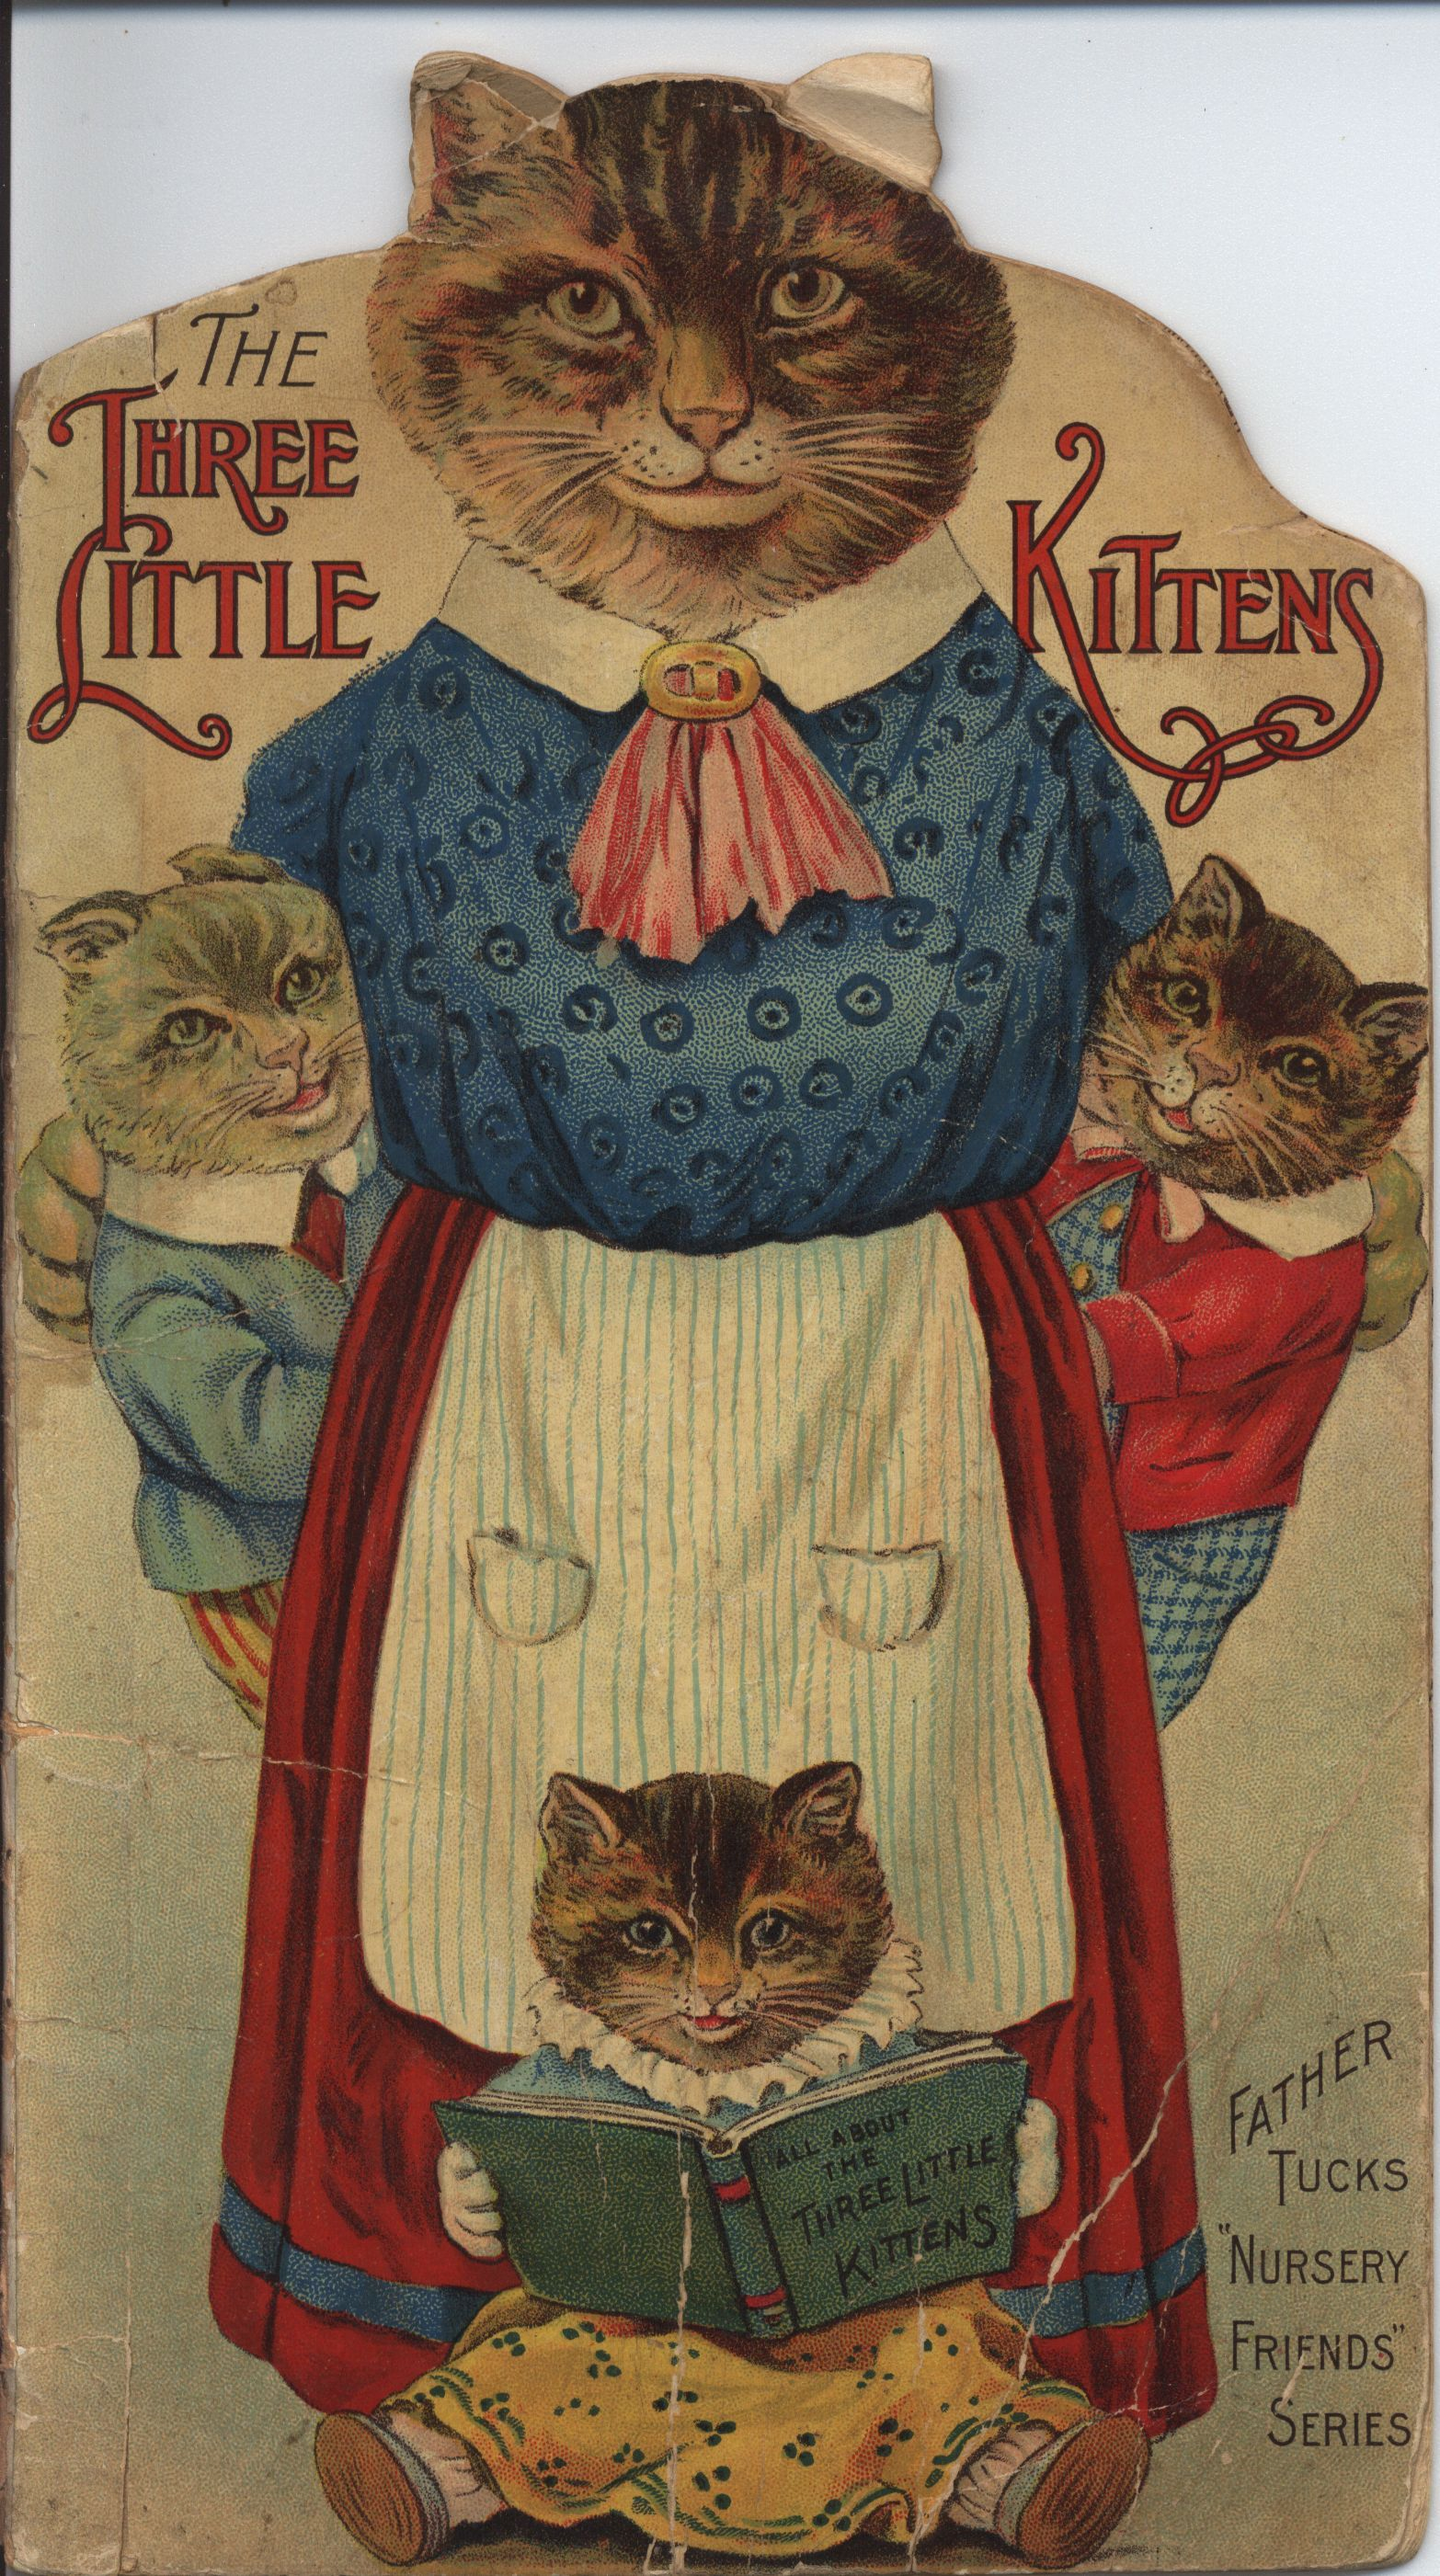 Full Sized Image The Three Little Kittens Kittens Vintage Cat Art Vintage Children S Books